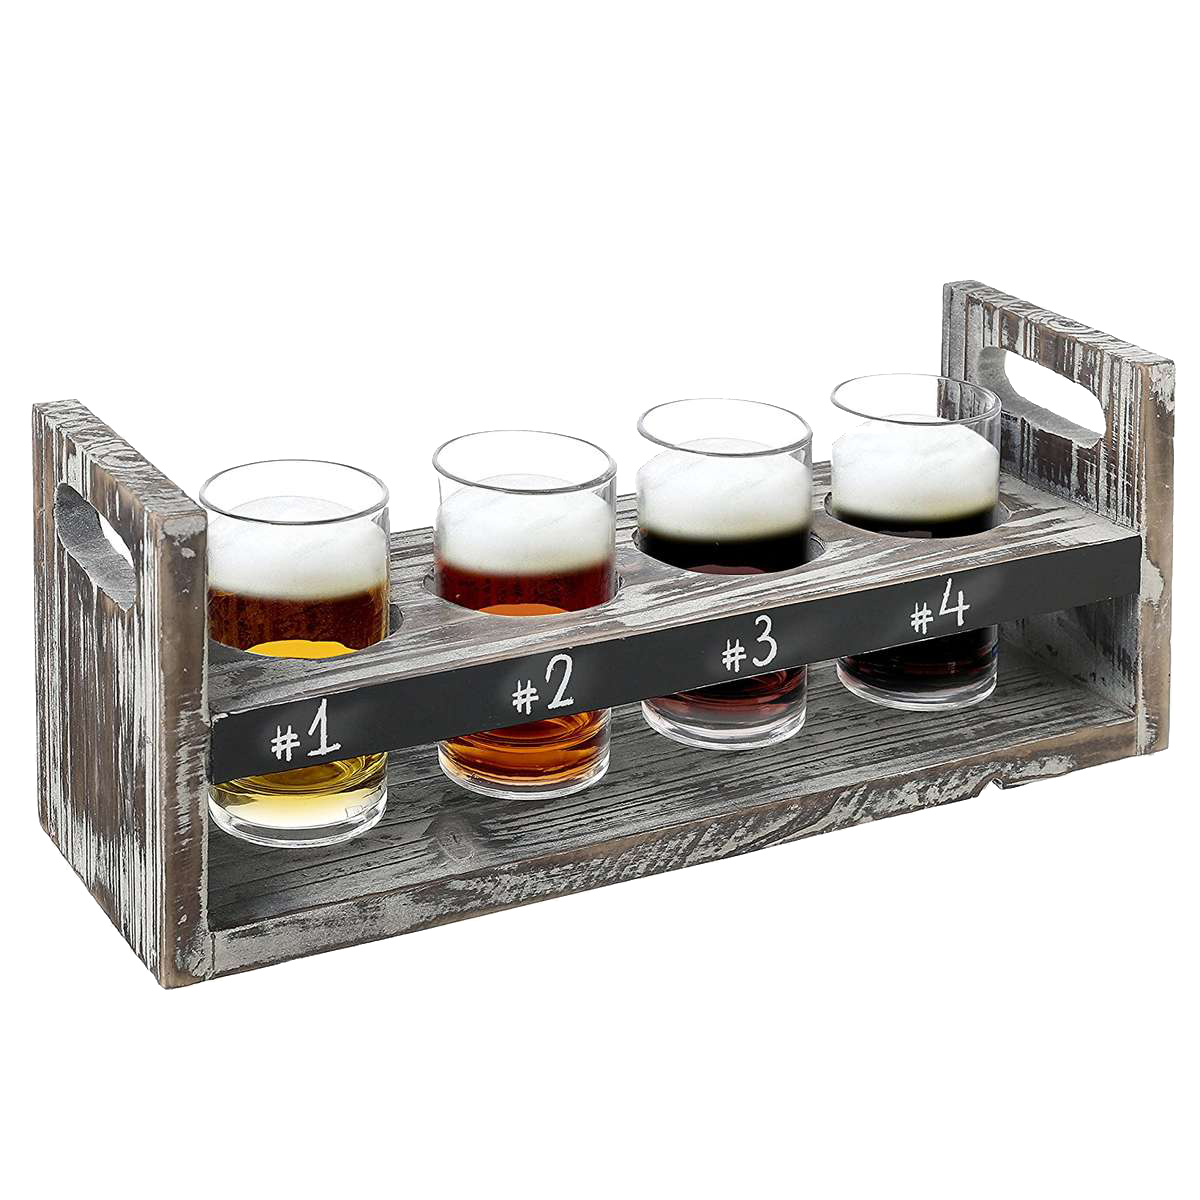 A craft beer tasting glass set